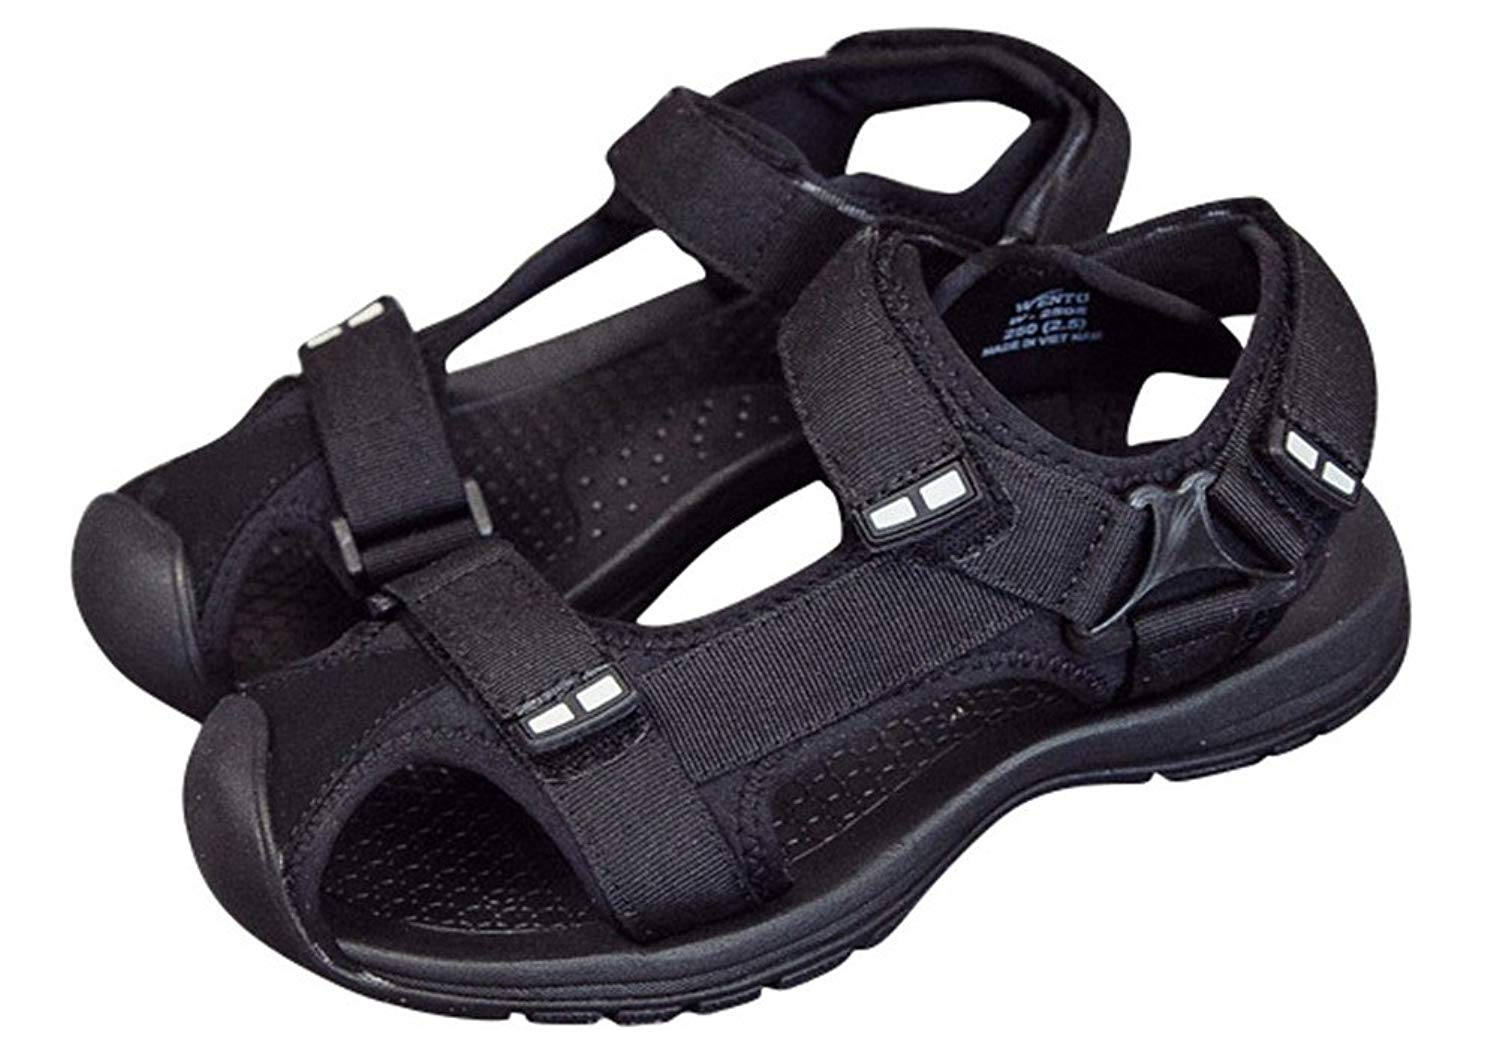 8bf6301b630 Get Quotations · ACE SHOCK Athletic Sandals Men Flat